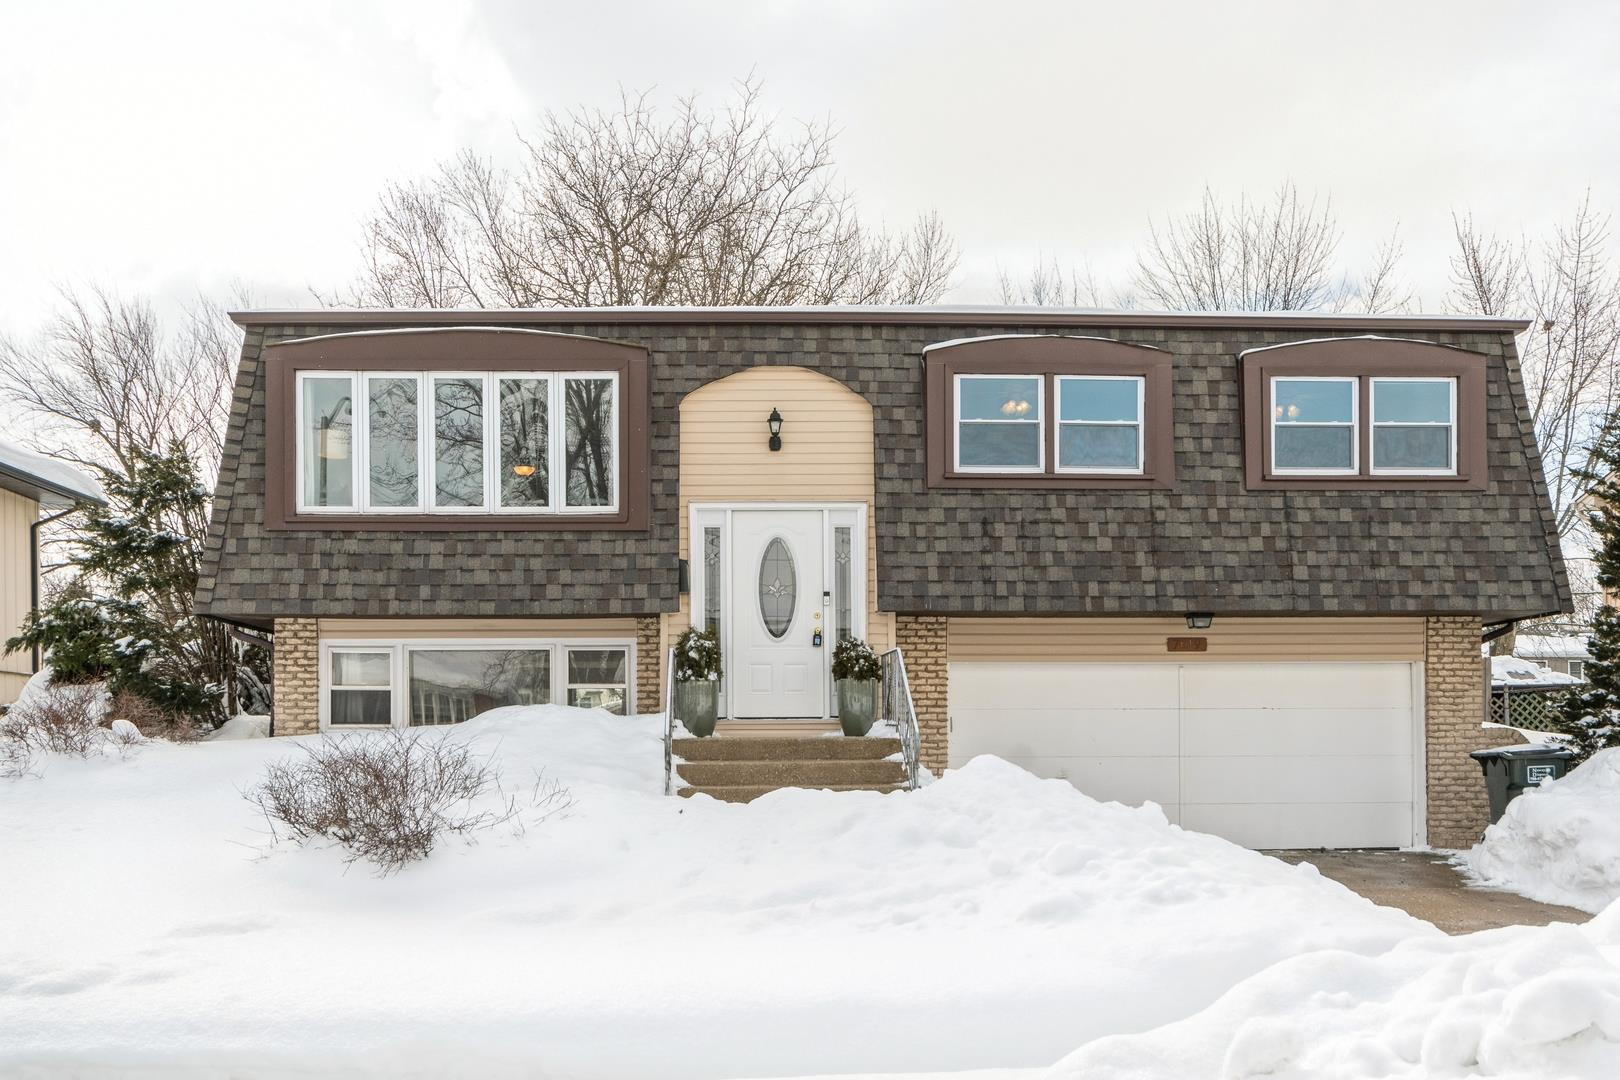 7619 162nd Place, Tinley Park, IL 60477 - #: 10998846